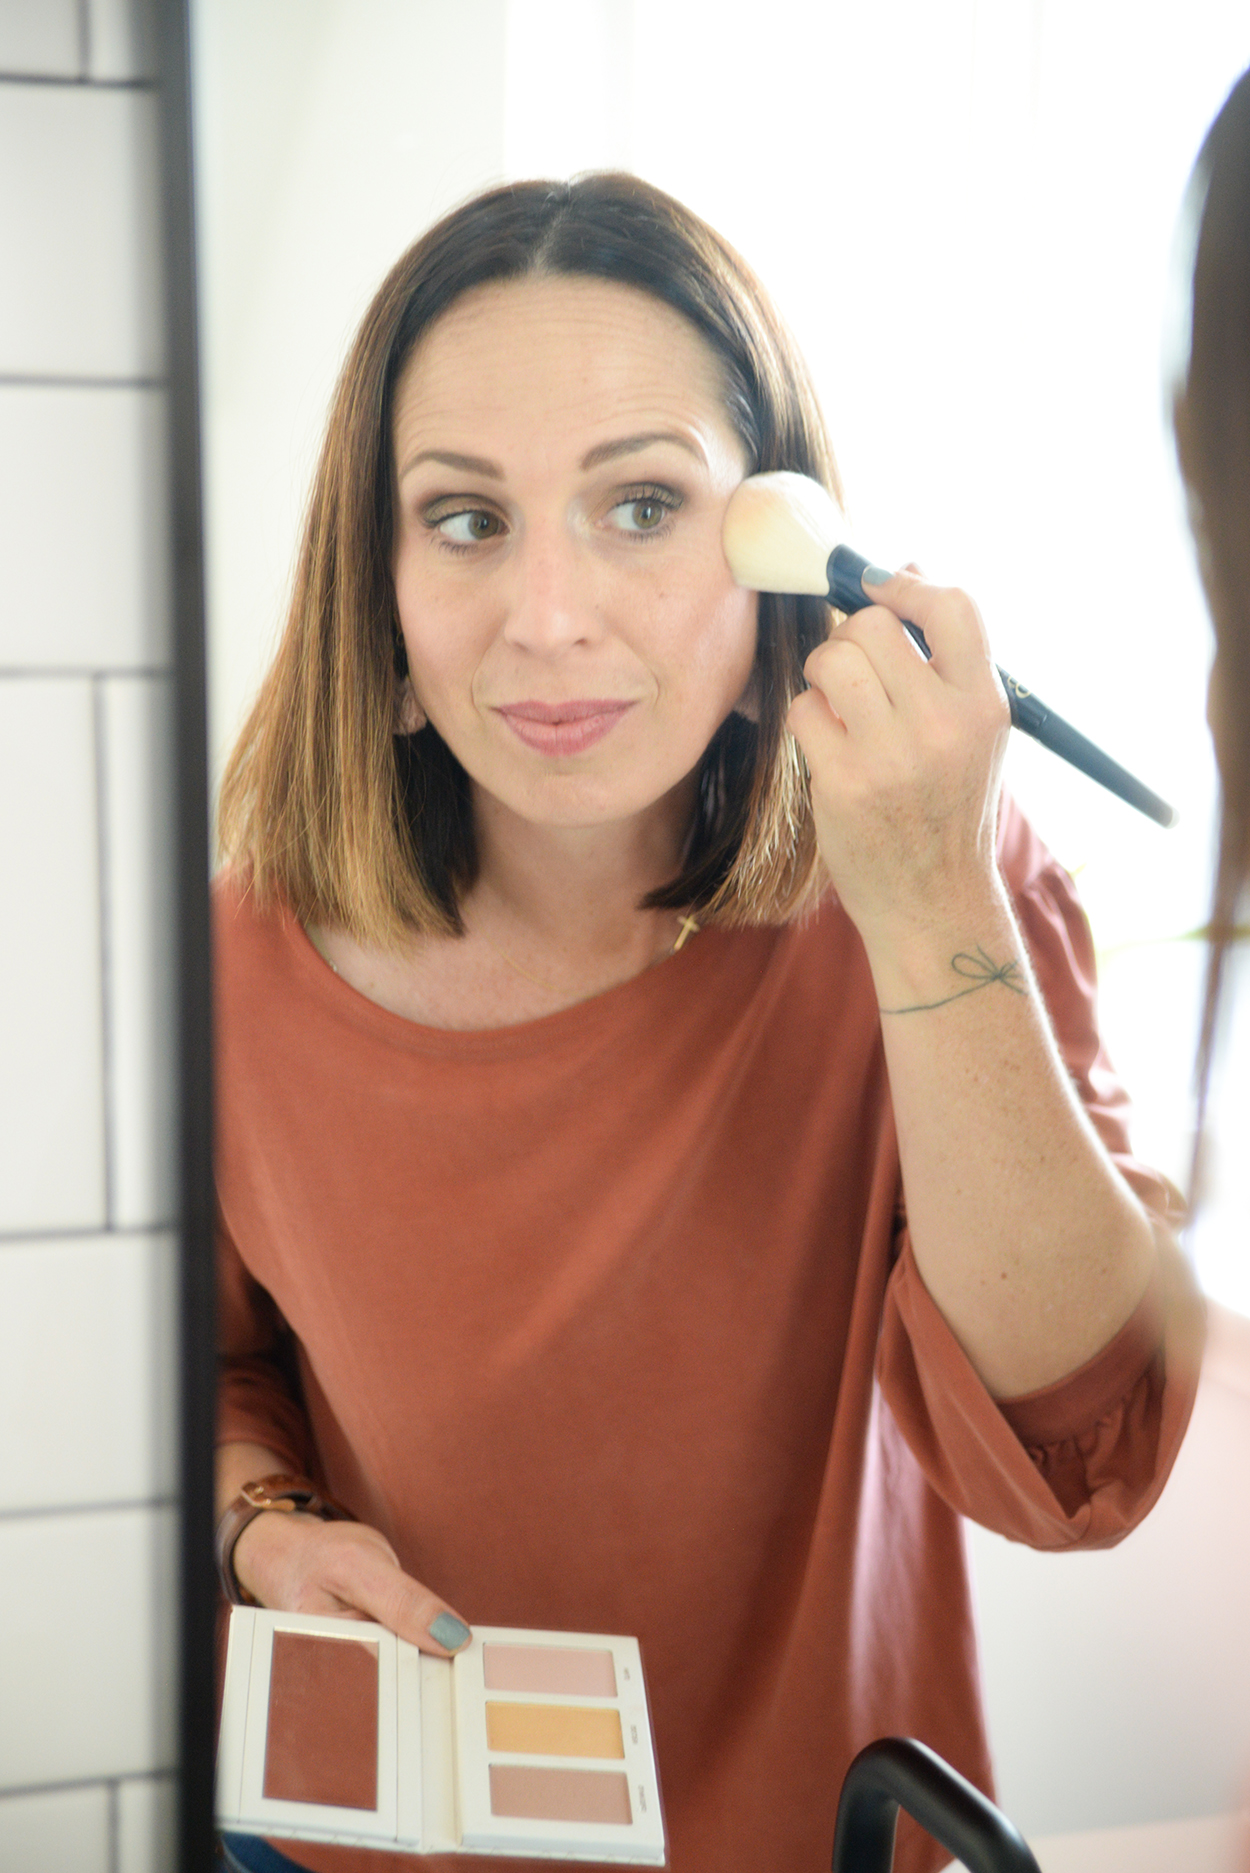 Woman with brown hair applying blush in mirror